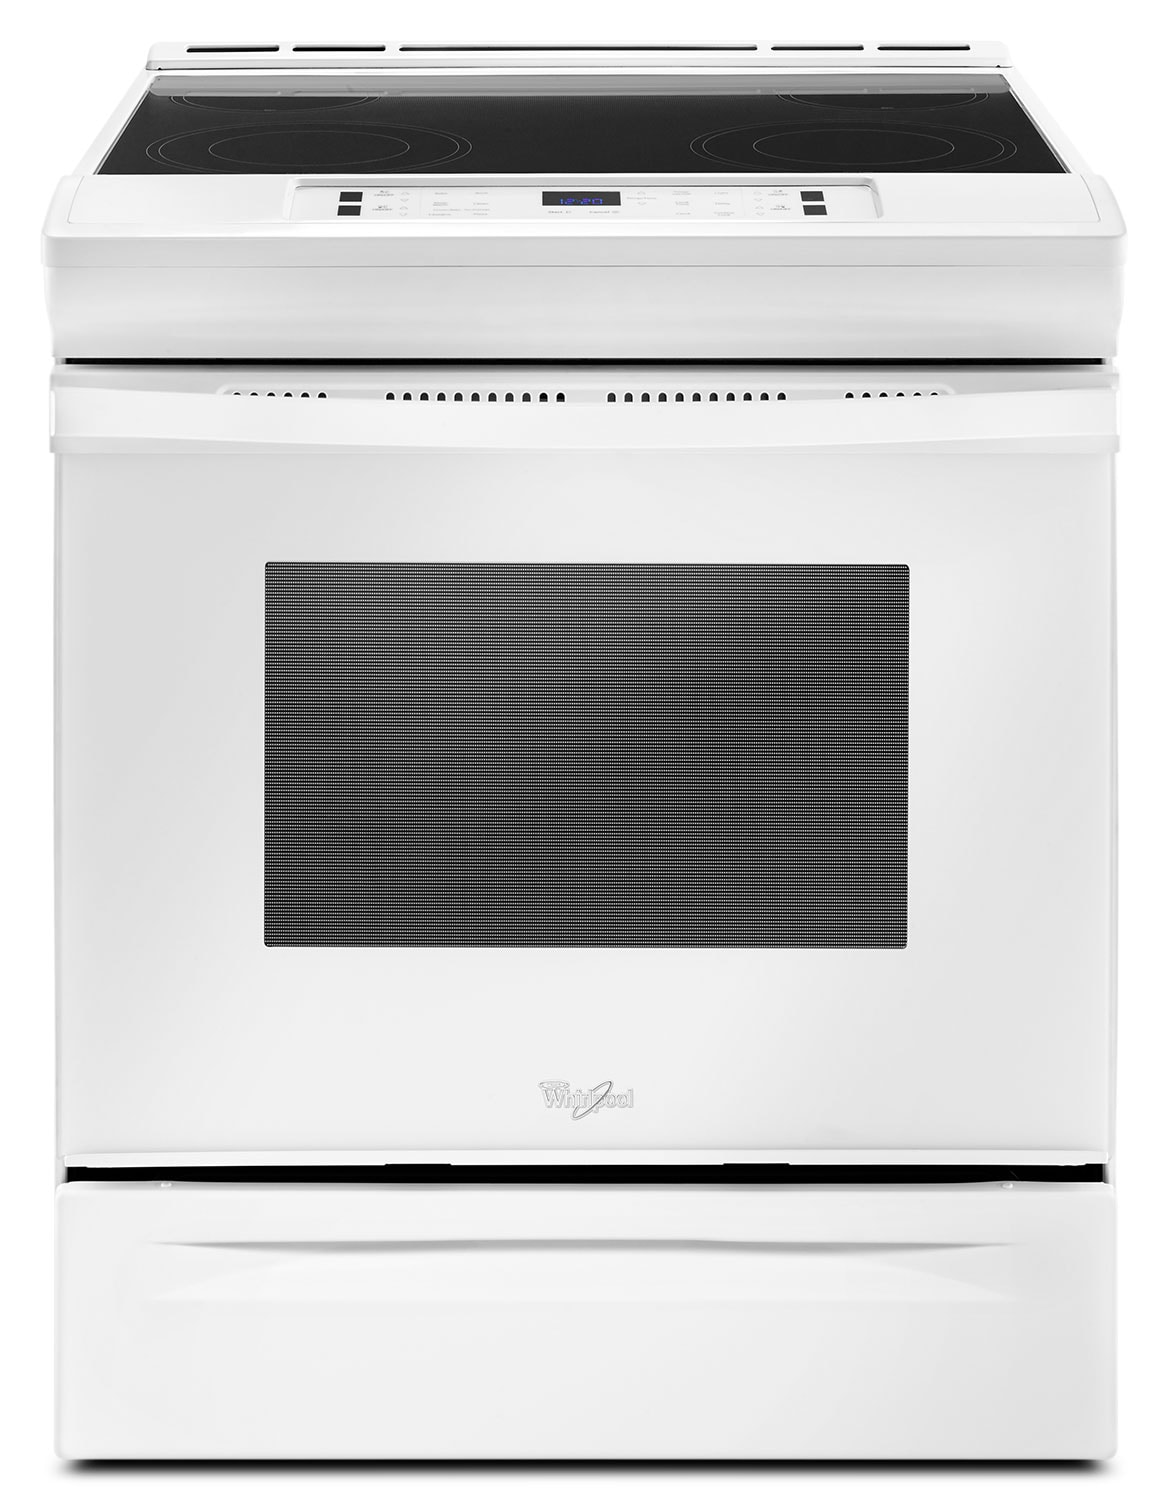 Cooking Products - Whirlpool White Slide-In Electric Range (4.8 Cu. Ft.) - YWEE510S0FW